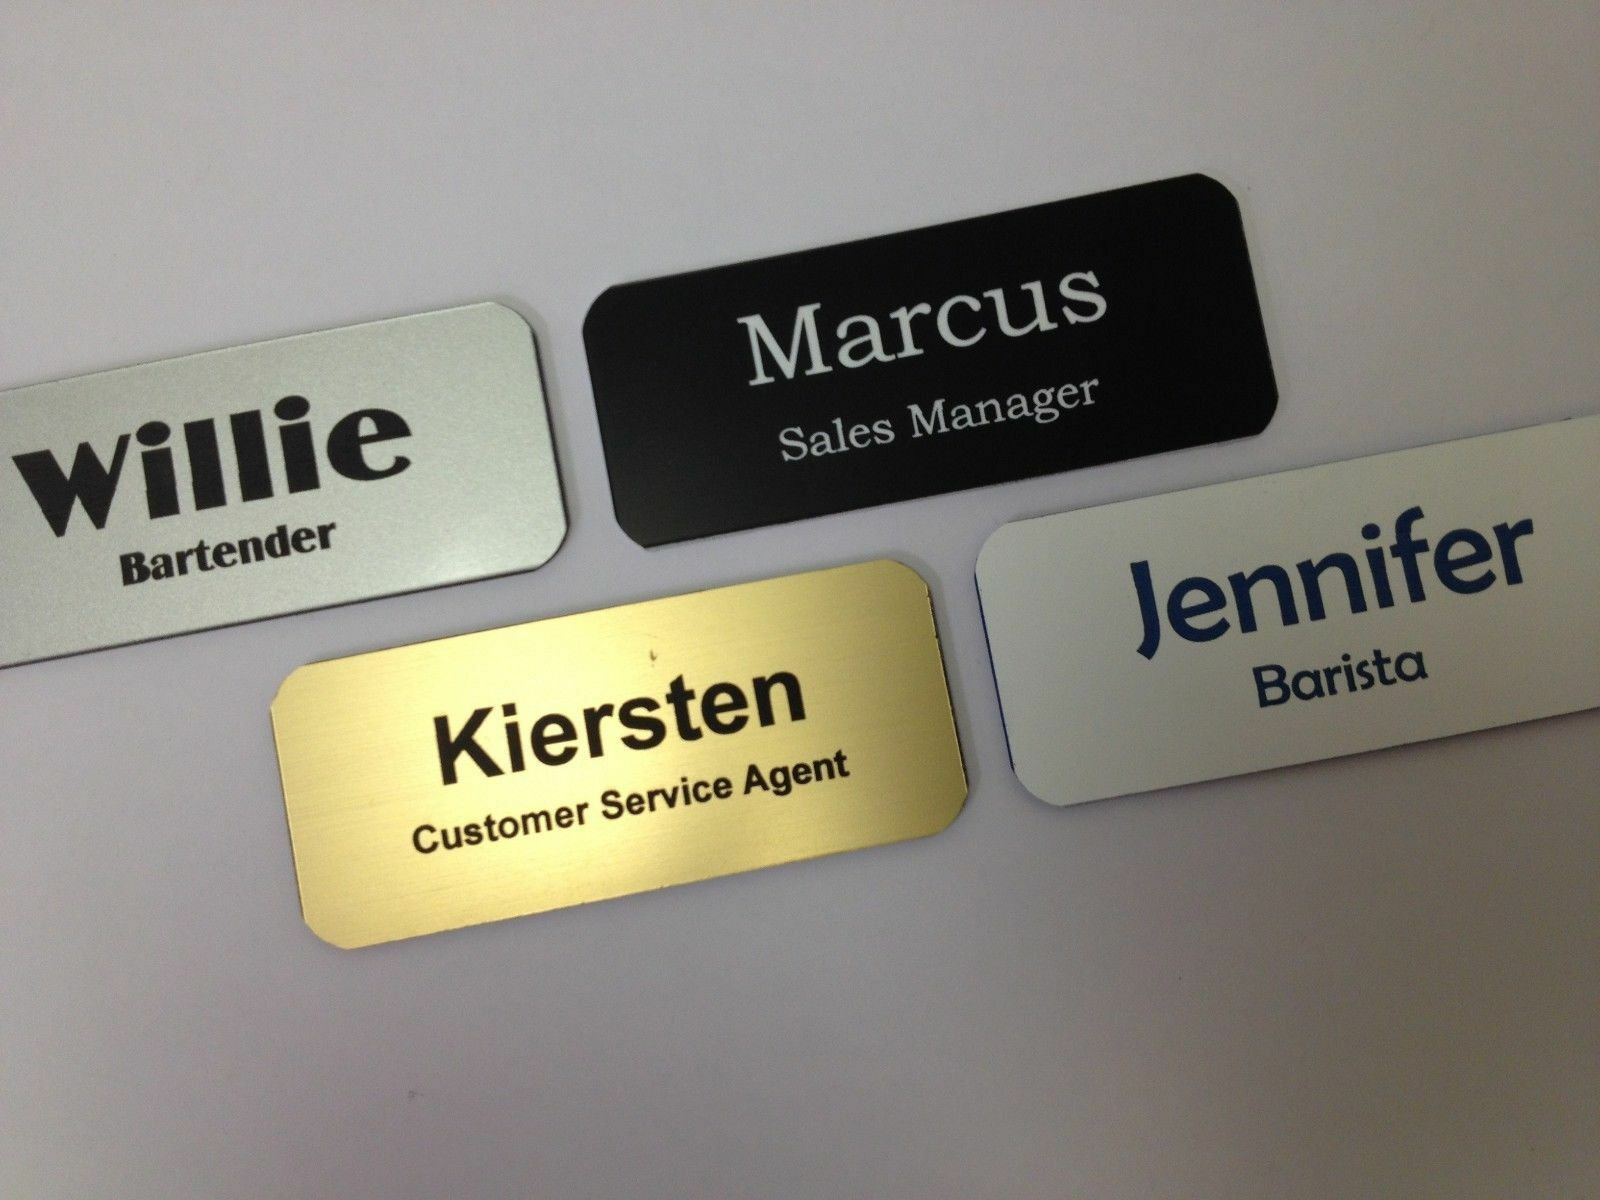 Name Badge: How To Make Magnetic Name Tags